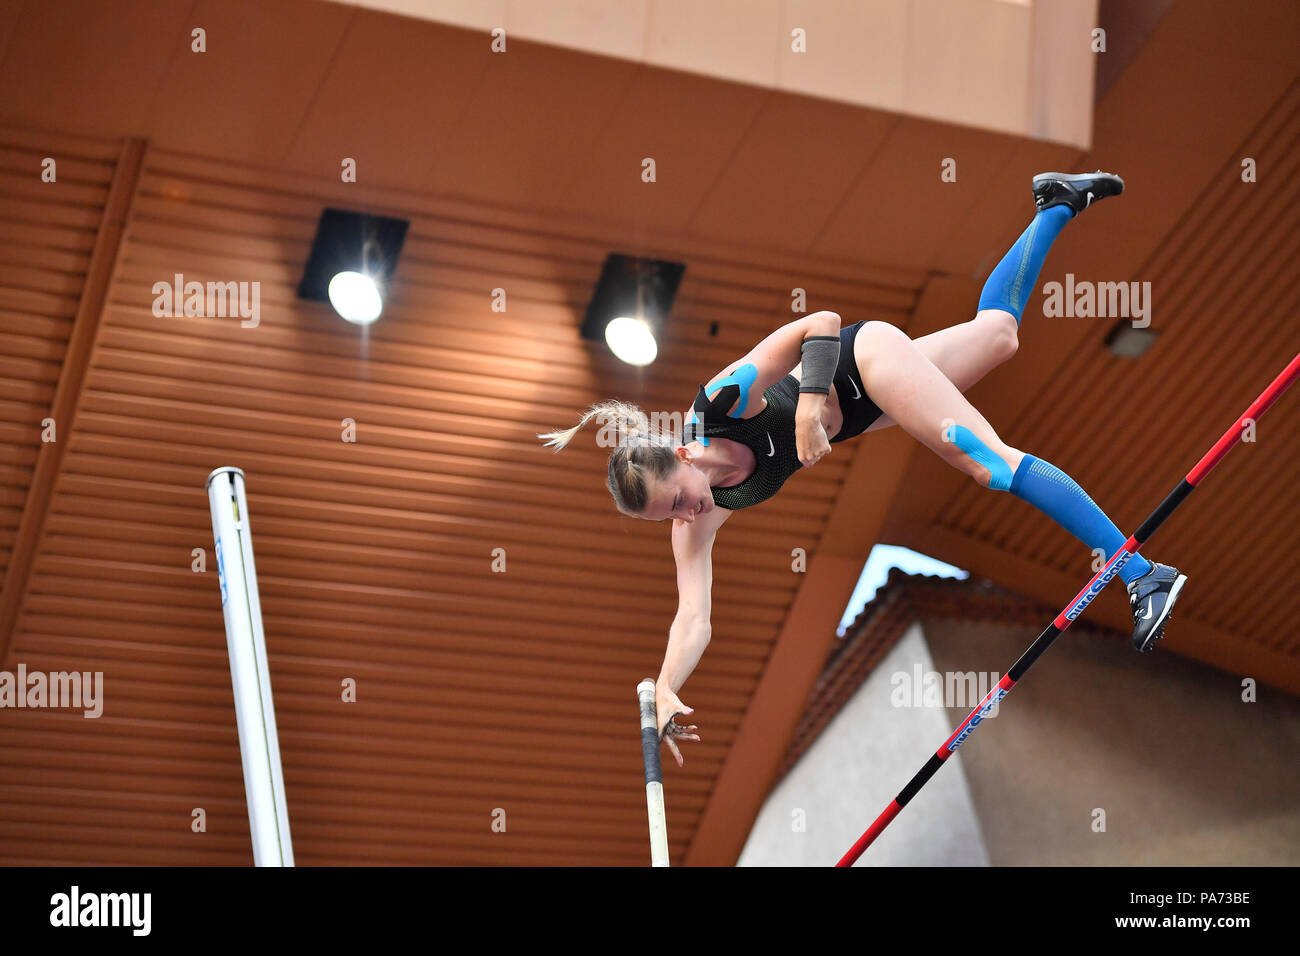 Fontvieille. 20th July, 2018. Anzhelika Sidorova competes during the women's pole vault match at the IAAF Diamond League athletics 'Herculis' meetings in Fontvieille, Monaco on July 20, 2018. Anzhelika Sidorova claimed the title with 4.85 metres. Credit: Chen Yichen/Xinhua/Alamy Live News - Stock Image